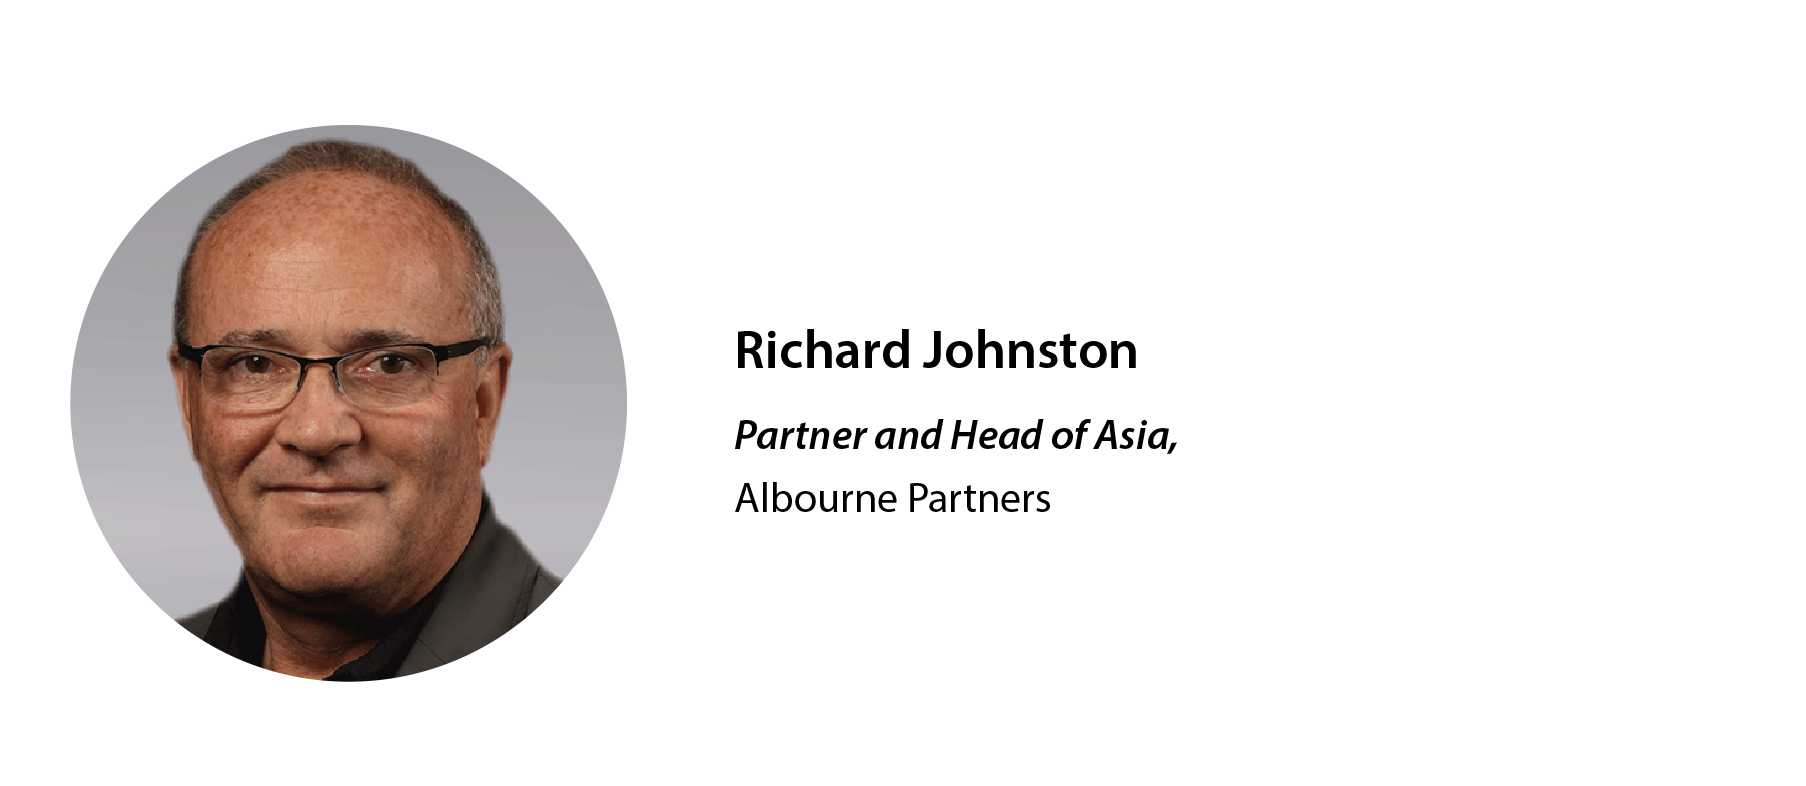 Richard Johnston, Partner and Head of Asia for Albourne Partners